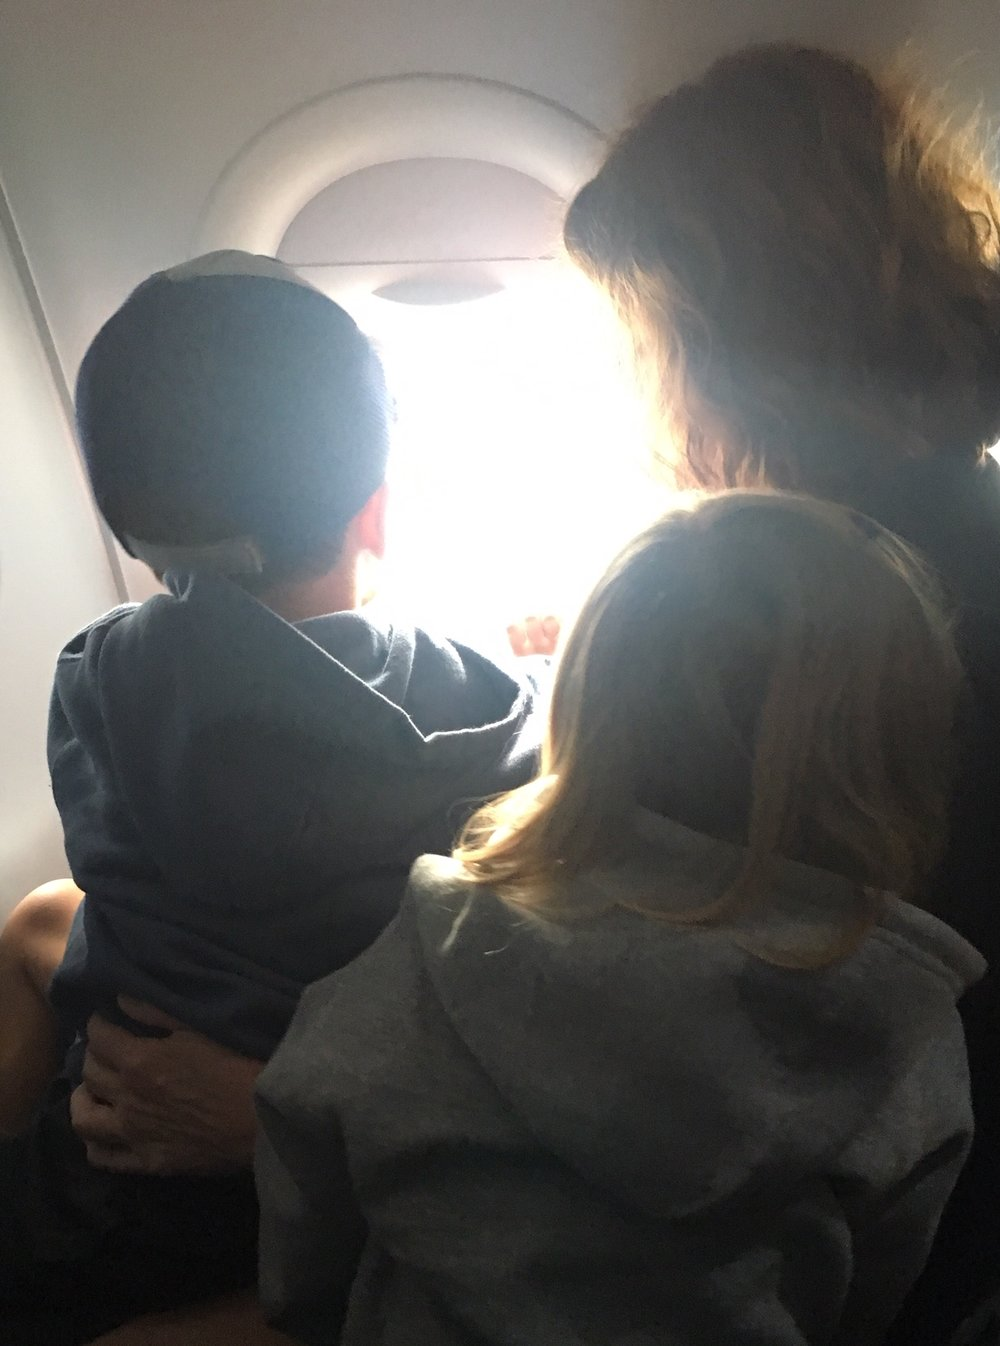 Their first airplane ride!